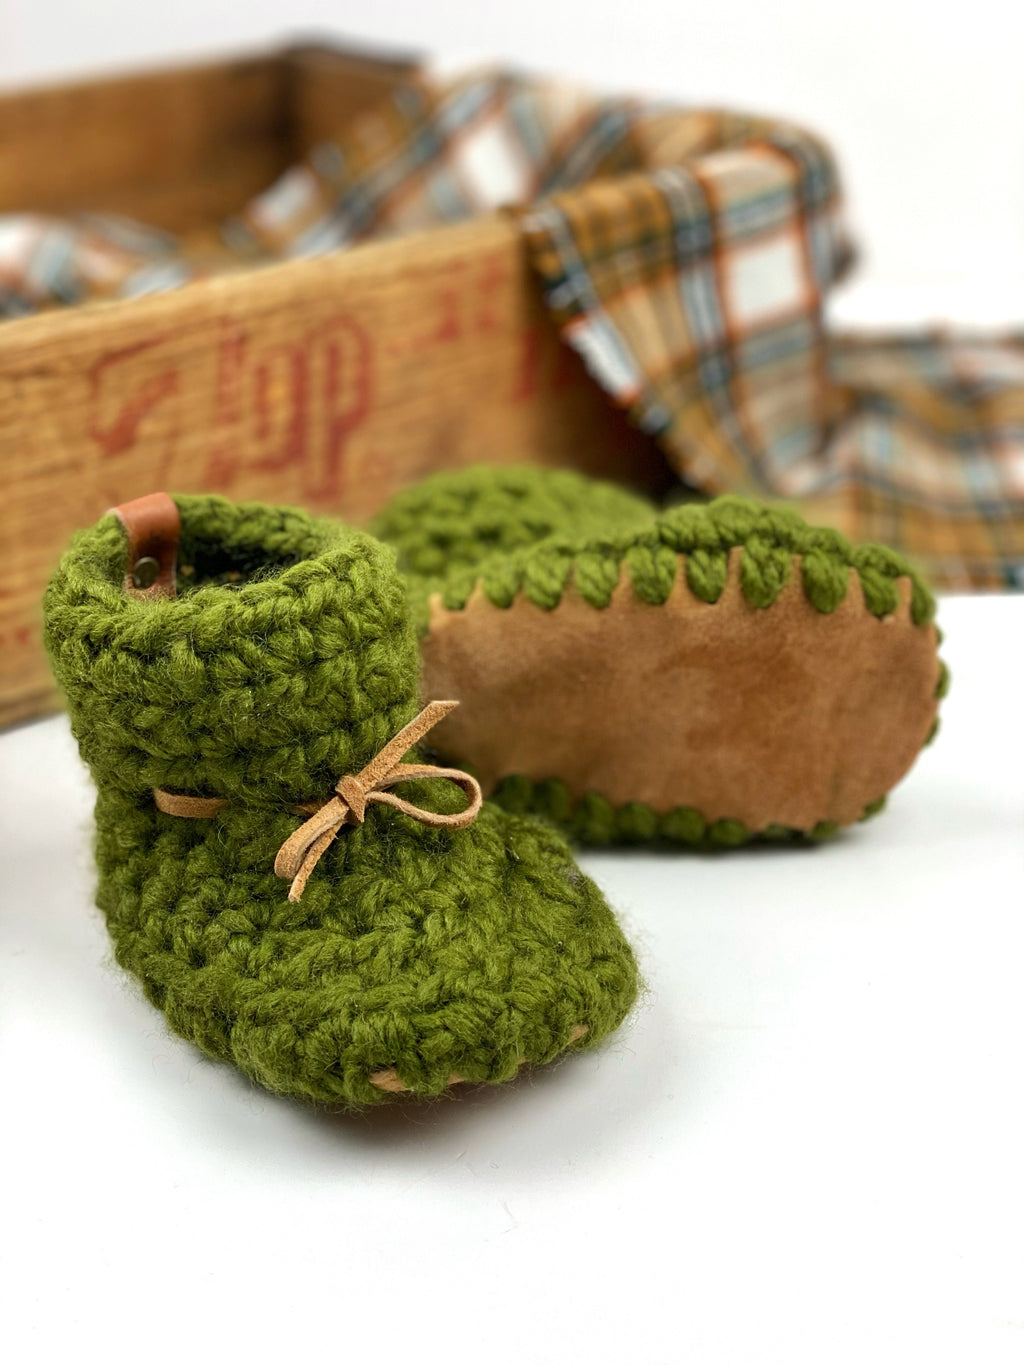 Padraig Crocheted Suede Sole Baby Booties Handmade